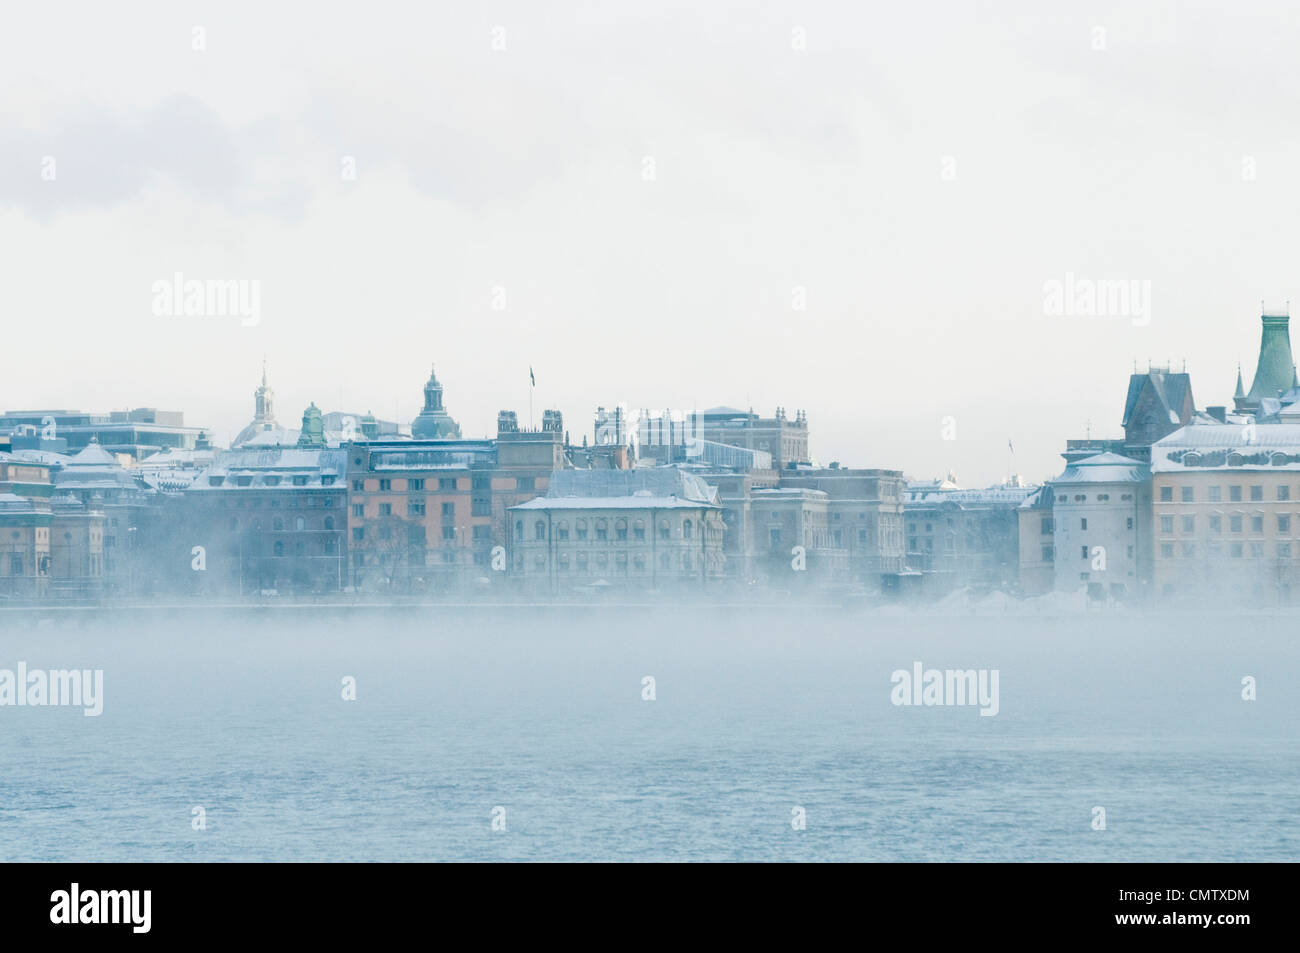 City view with mist - Stock Image